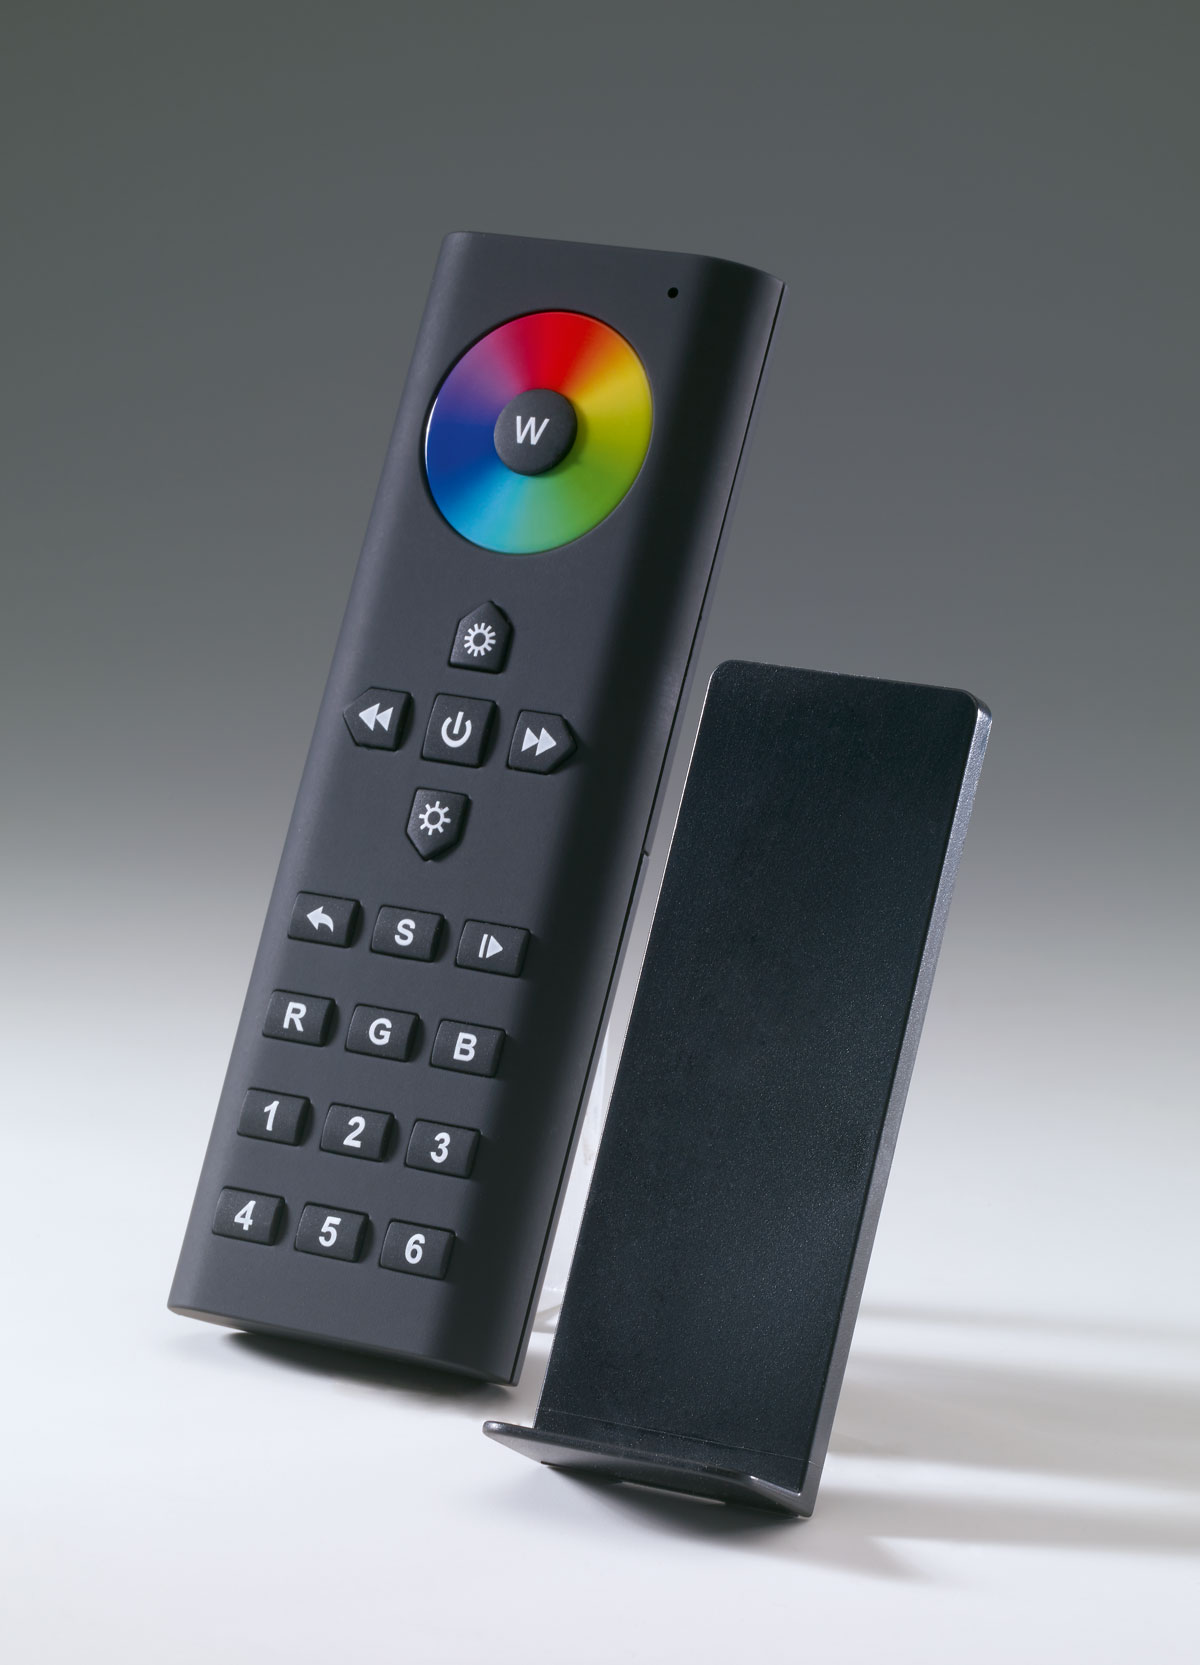 Premium remote control RGB-W, zone management, favorites, programs